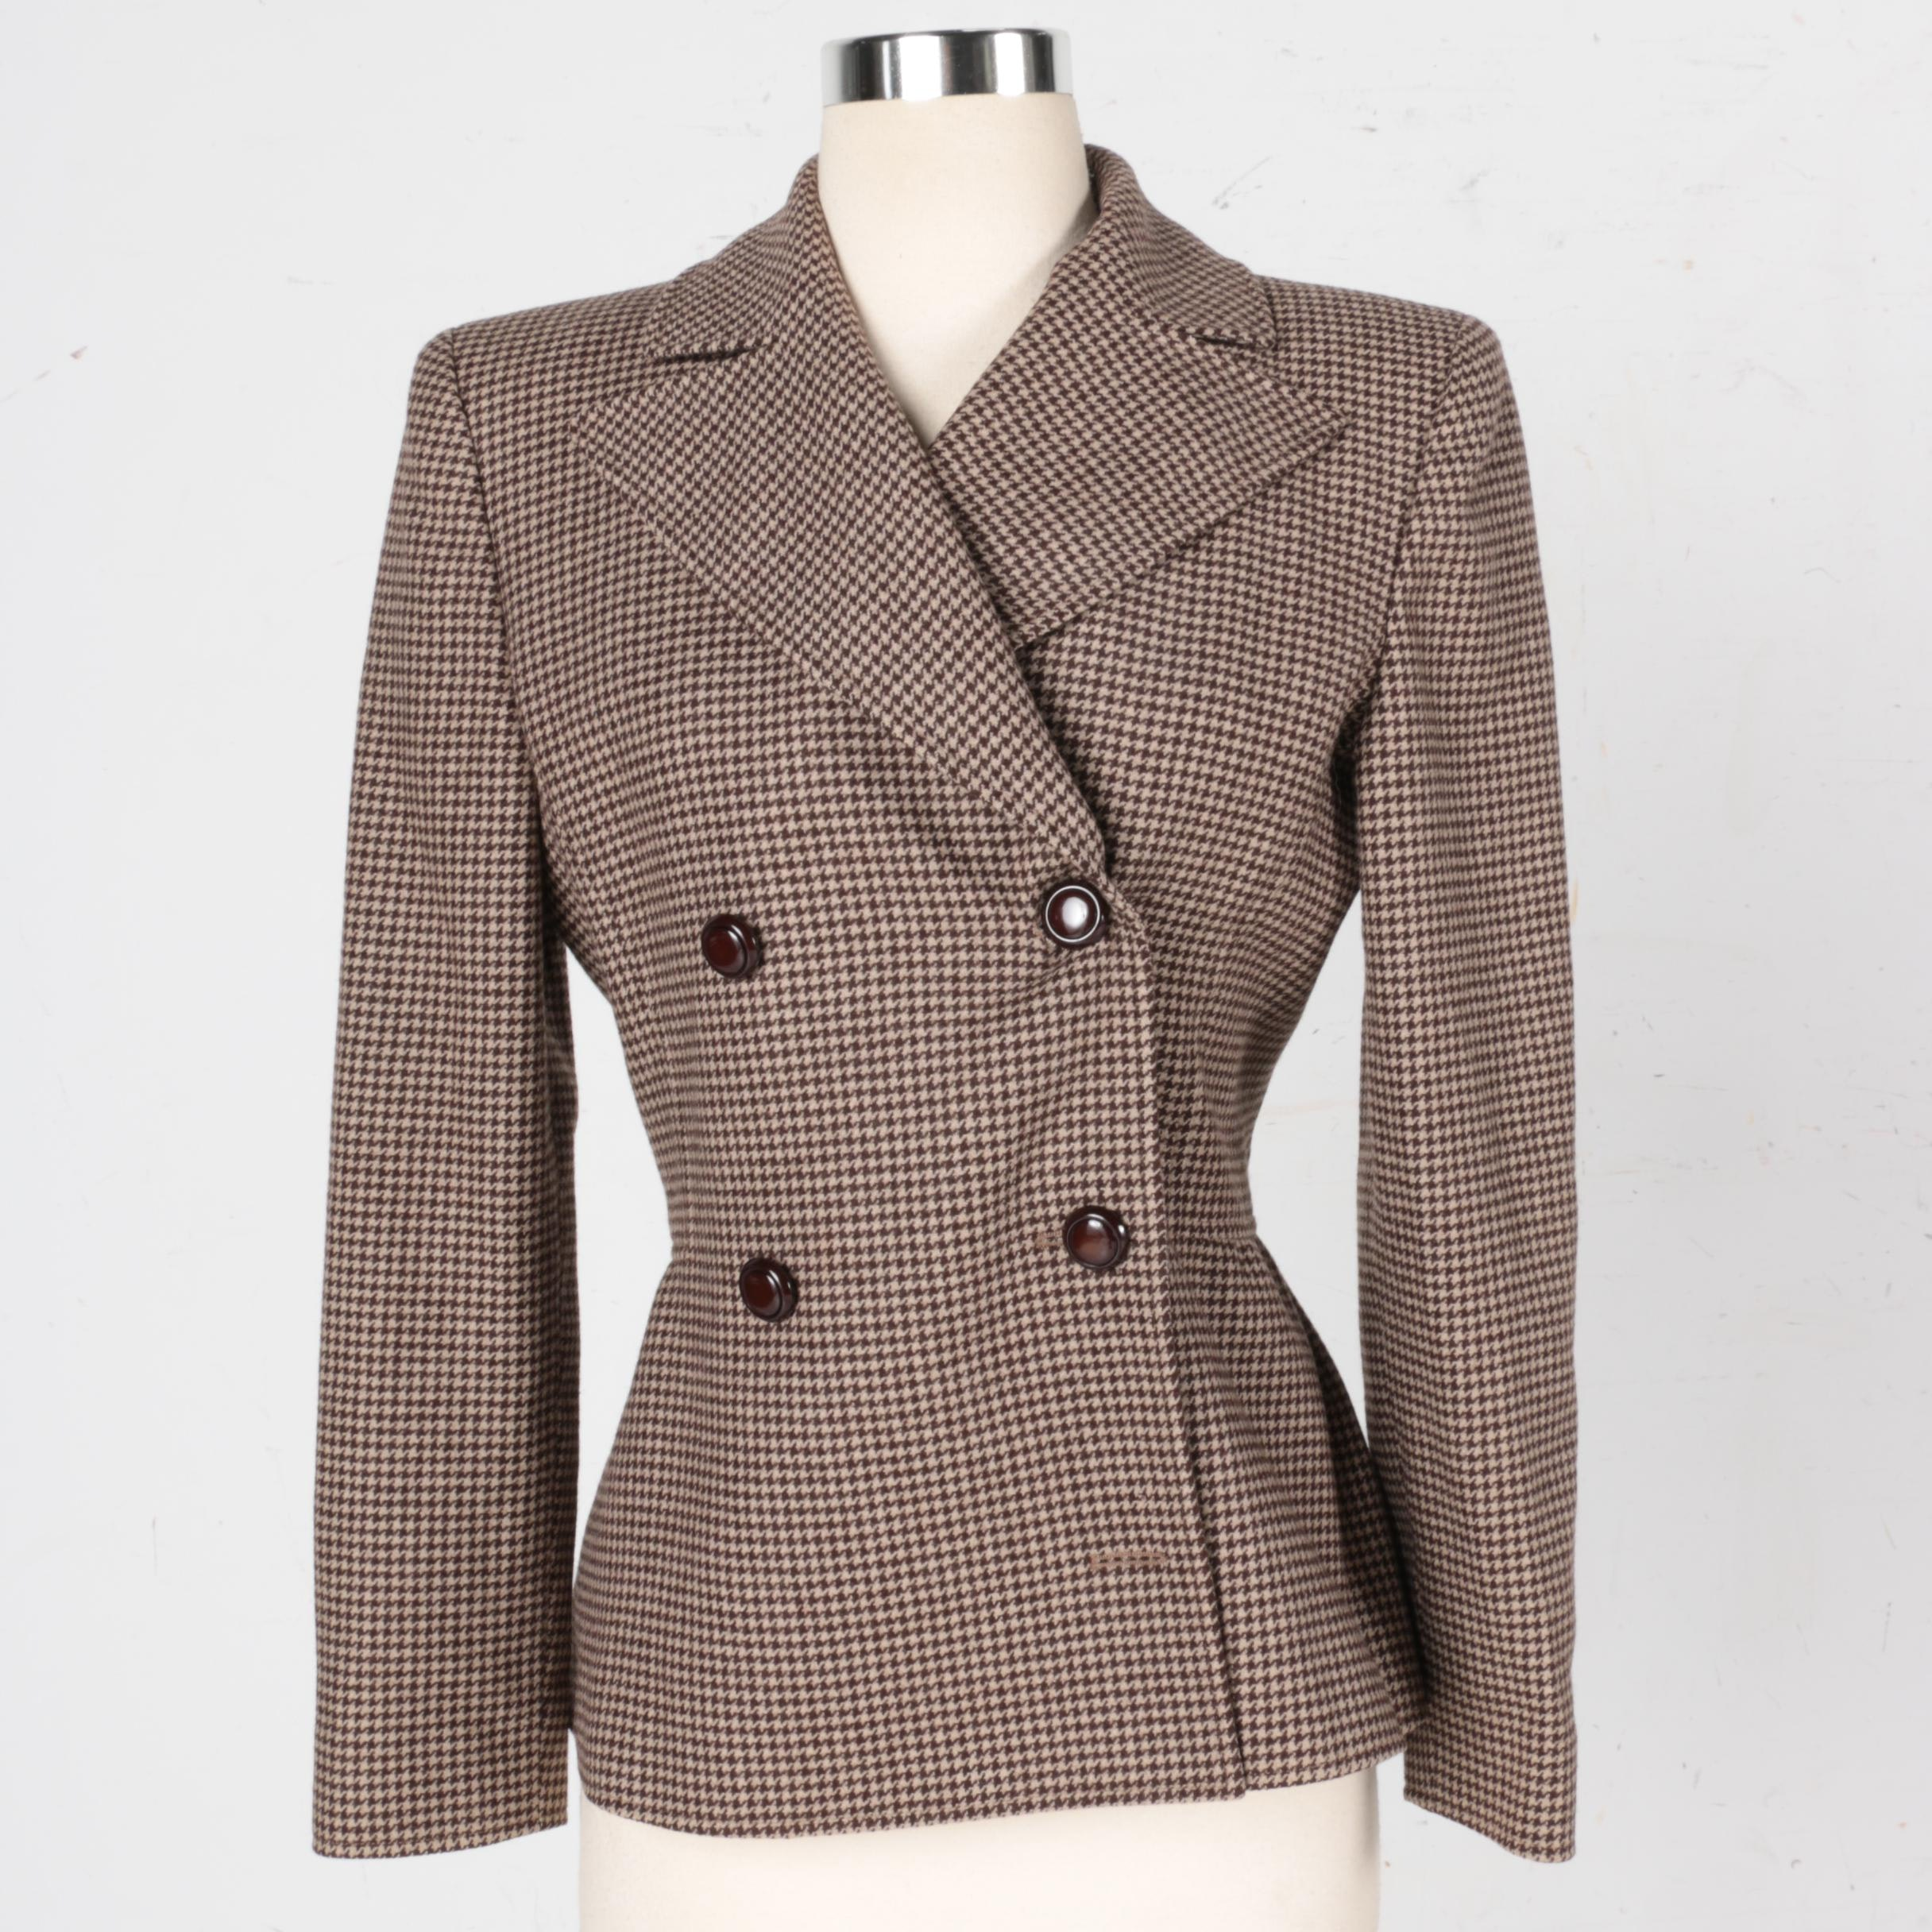 Women's Valentino Boutique Houndstooth Suit Jacket